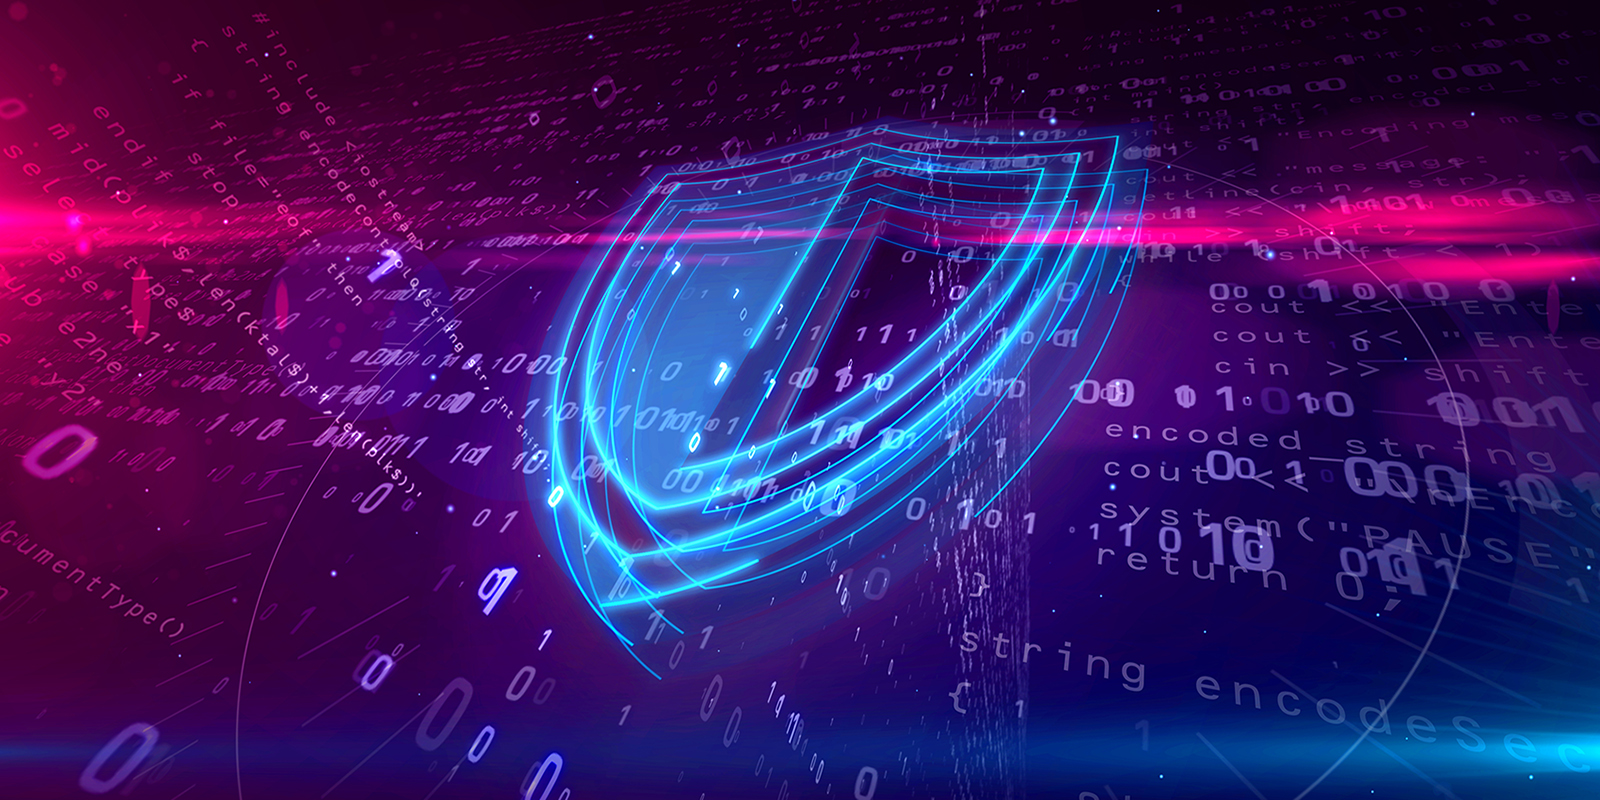 Cybersecurity-Experts-Nick-Shaw-12.04-Blog-Header